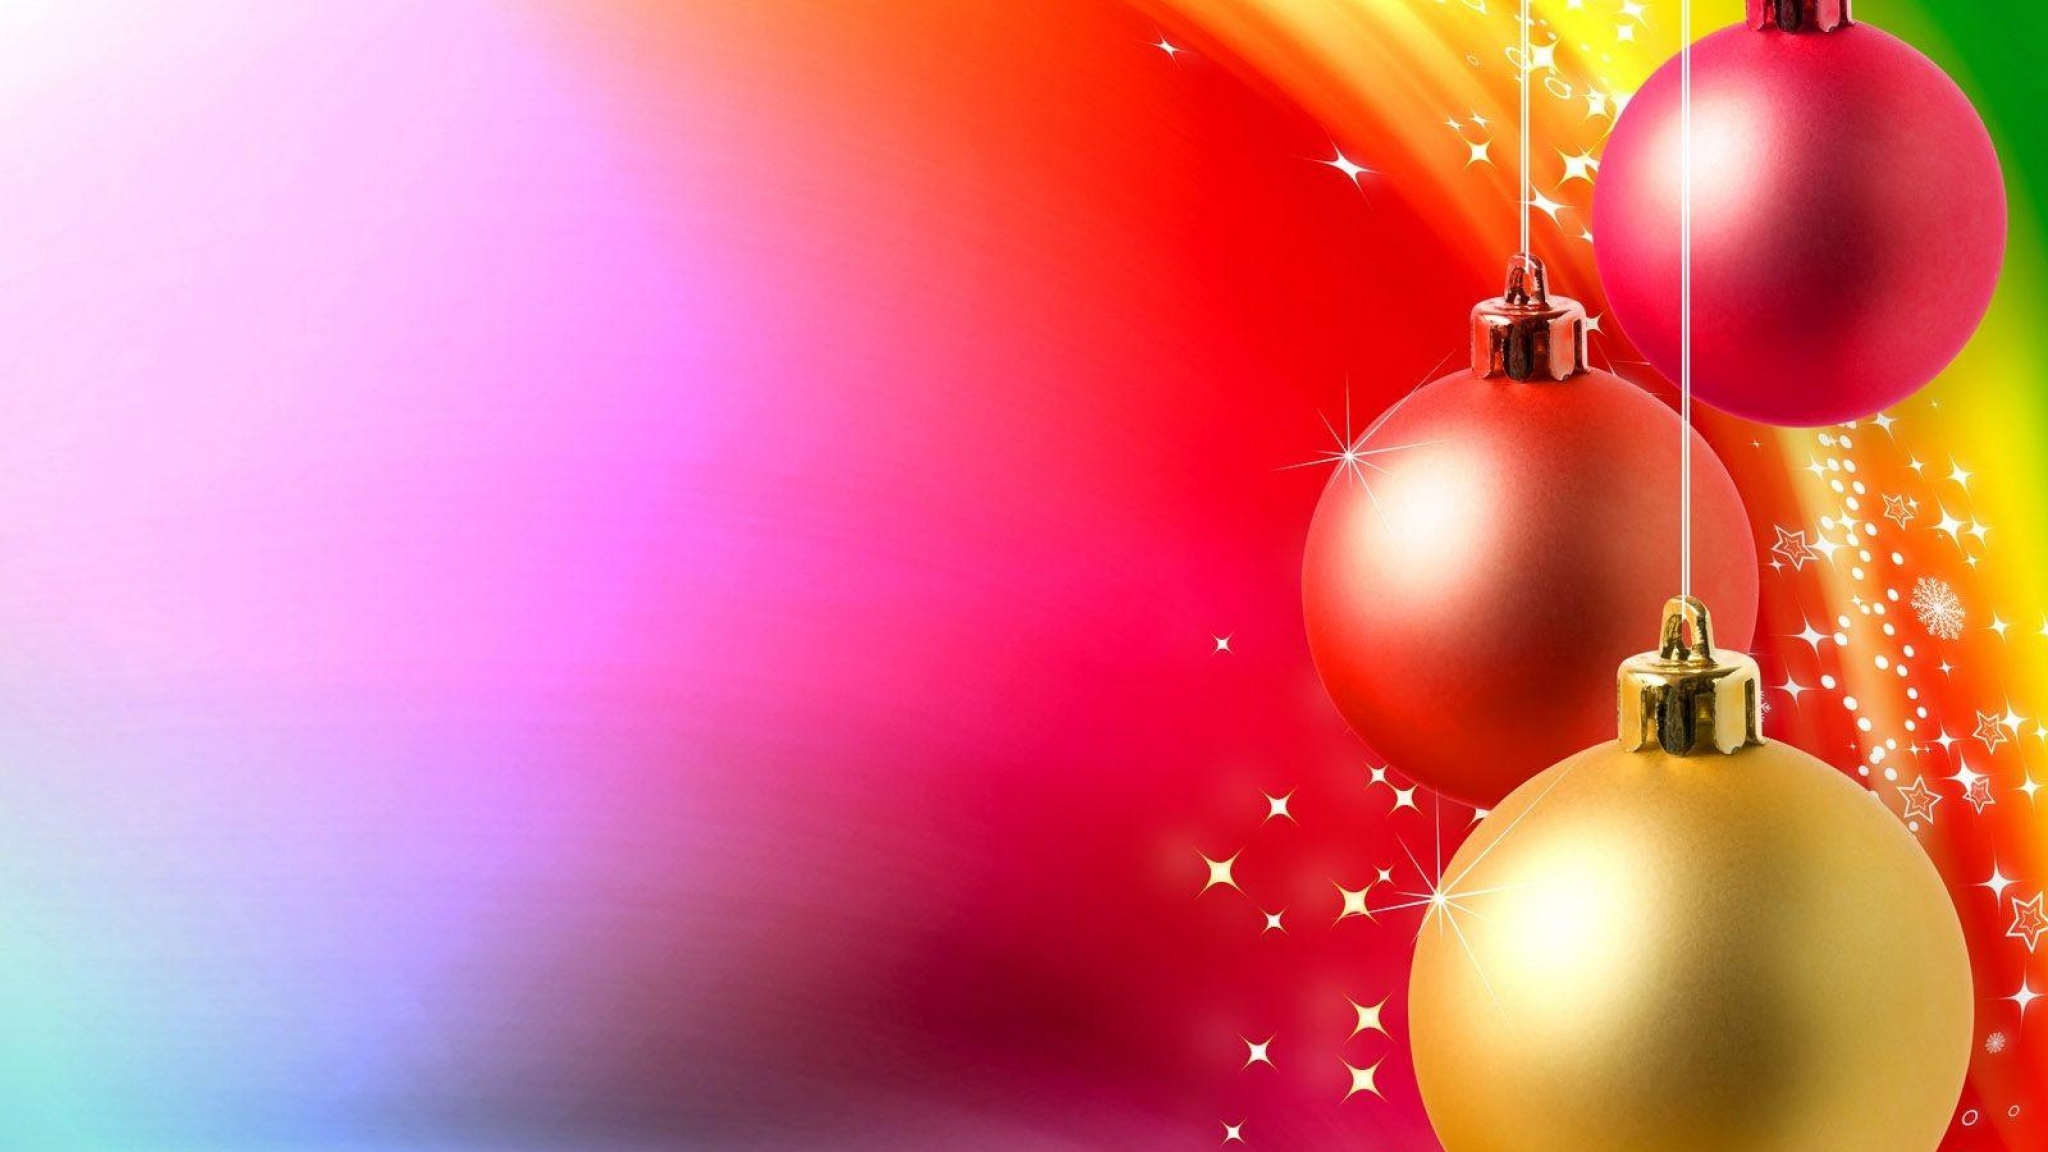 2048x1152 Wallpaper christmas toys, balls, yarn, background, colorful, positive